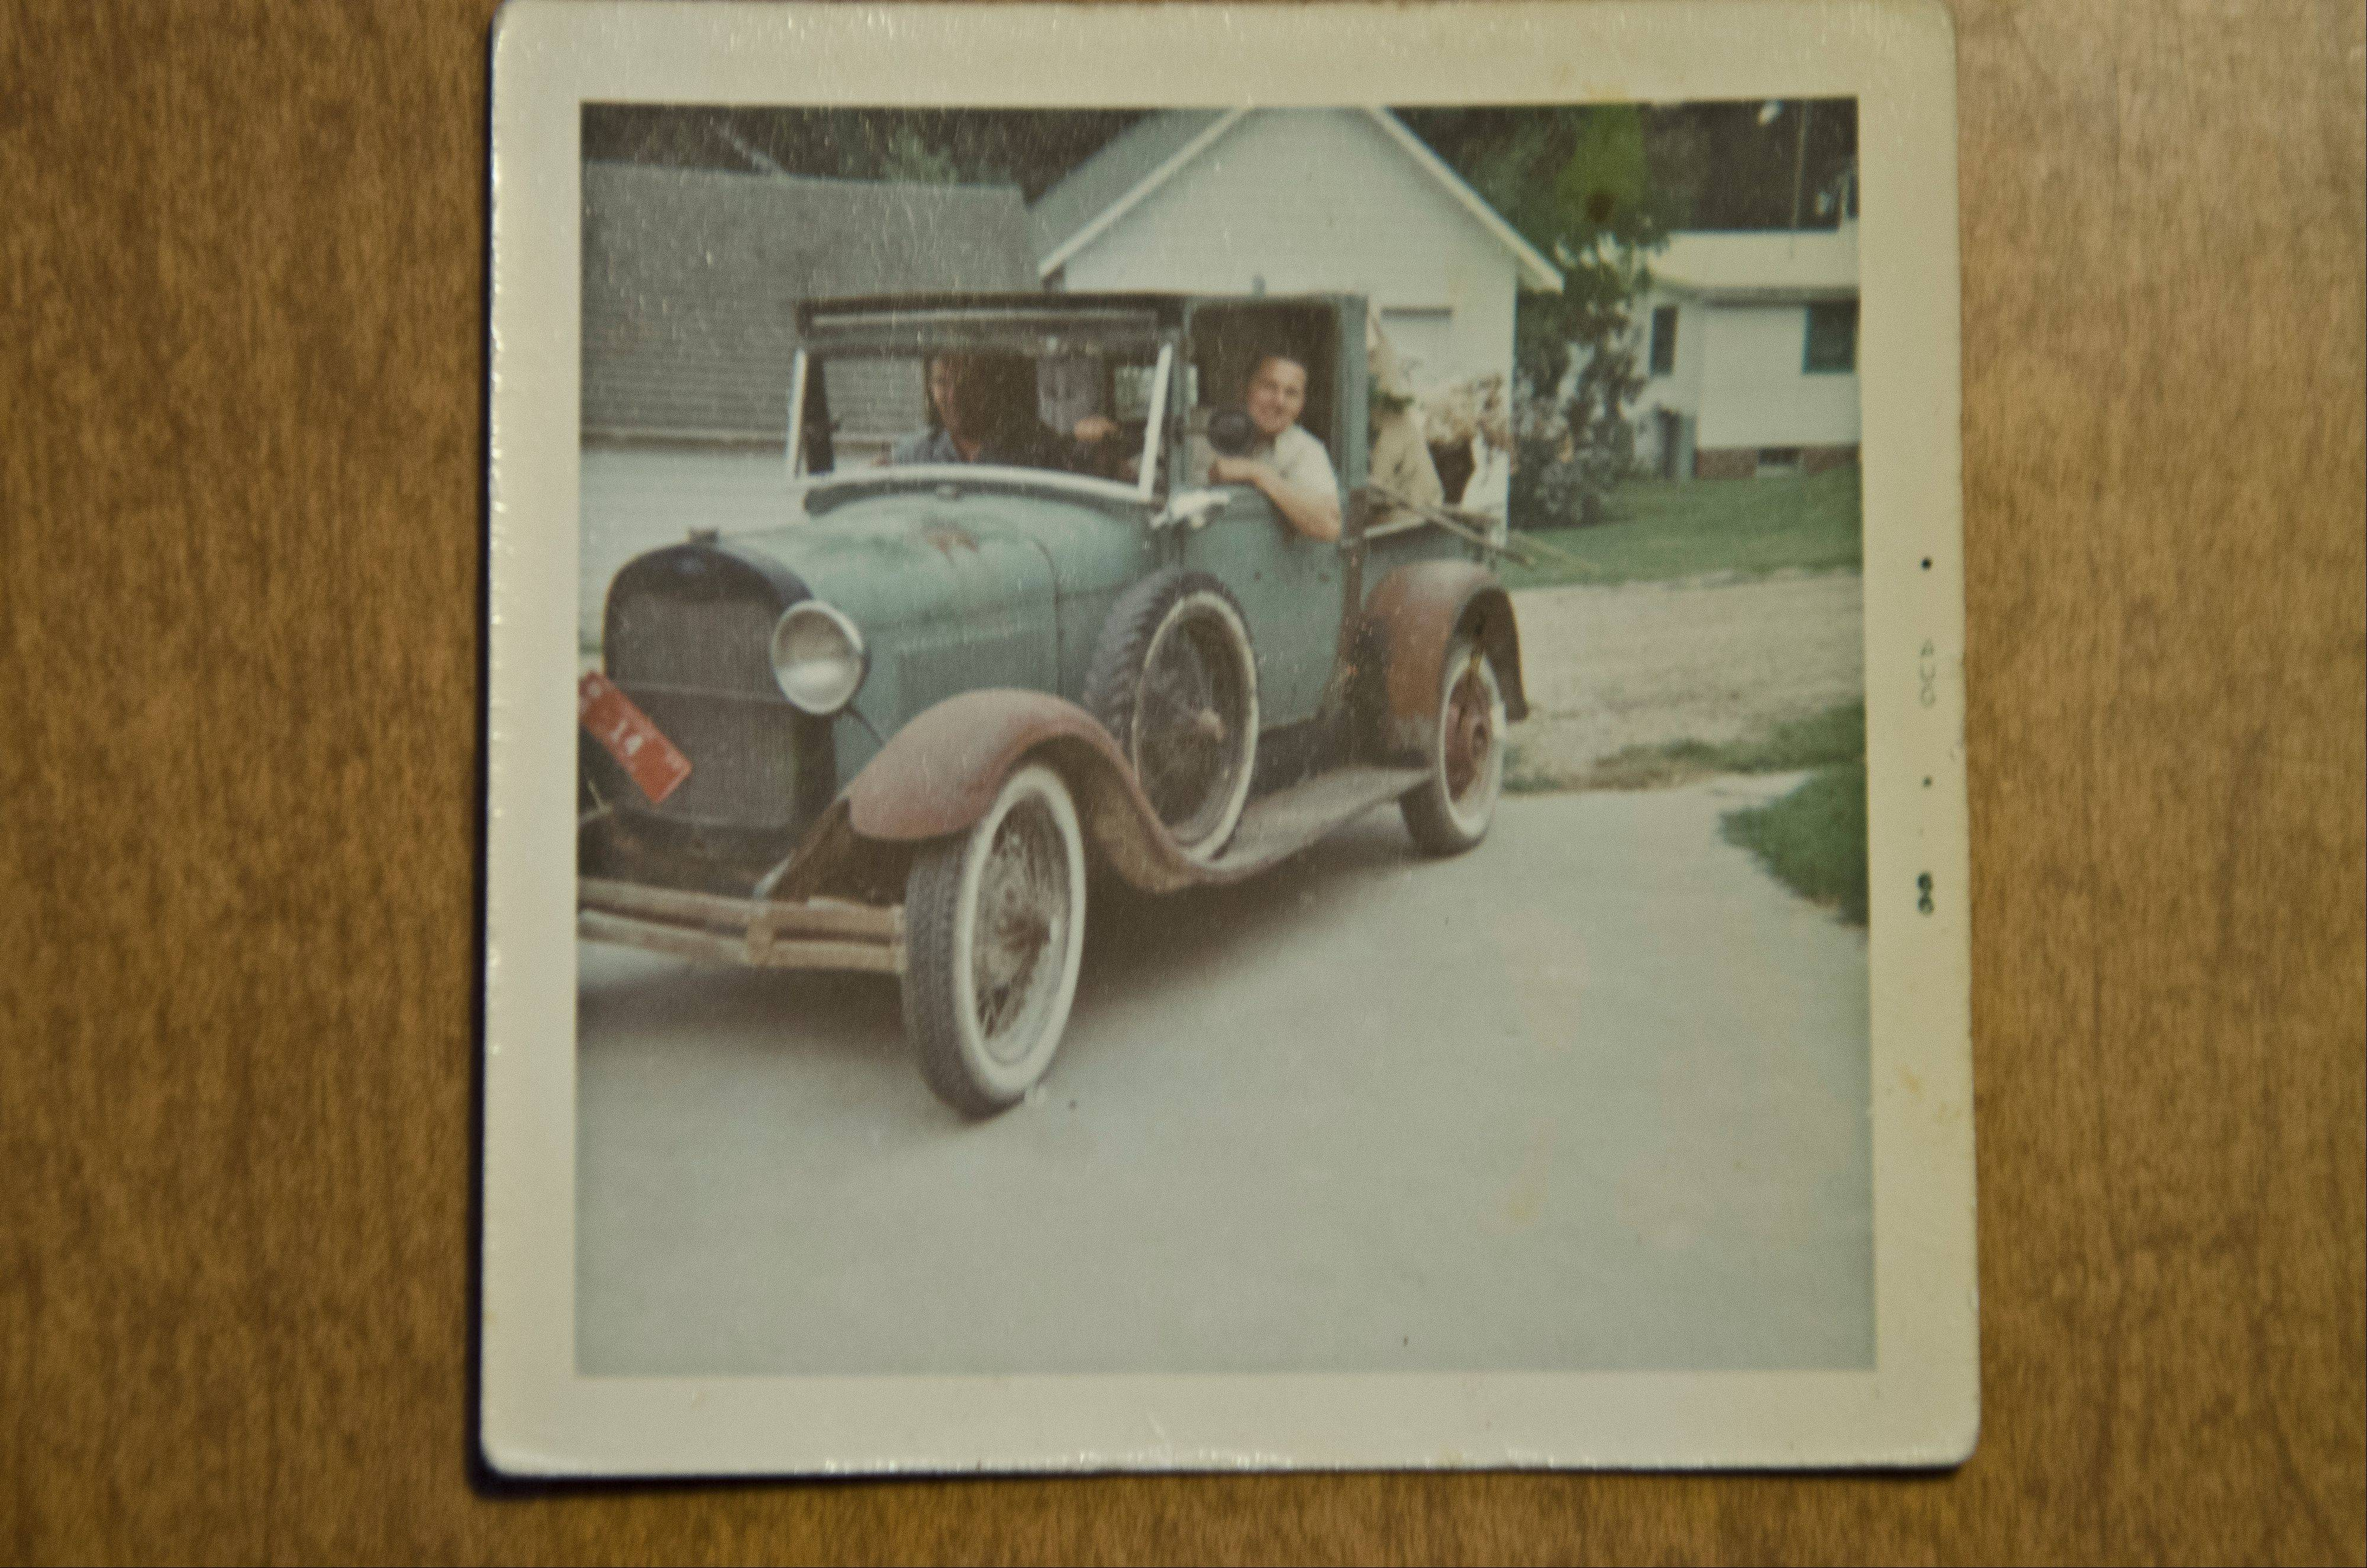 A doctor in Iowa owned the 1928 pickup when Mike Podgorski first spotted it in 1965.